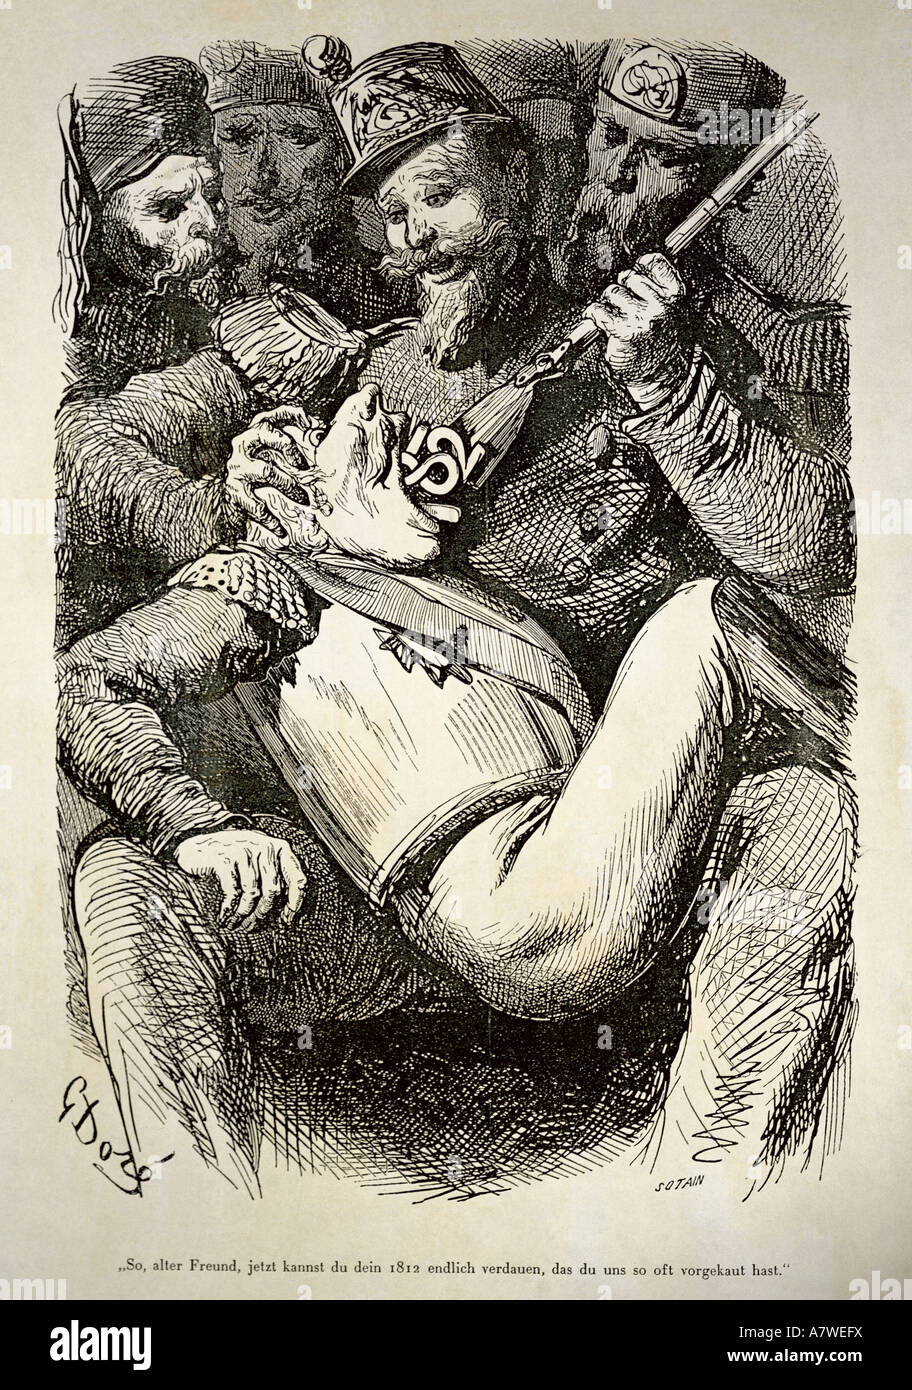 fine arts, Doré, Gustave (1832 - 1883), 'History of the Holy Russia', 1854, page 201, 'Well old - Stock Image